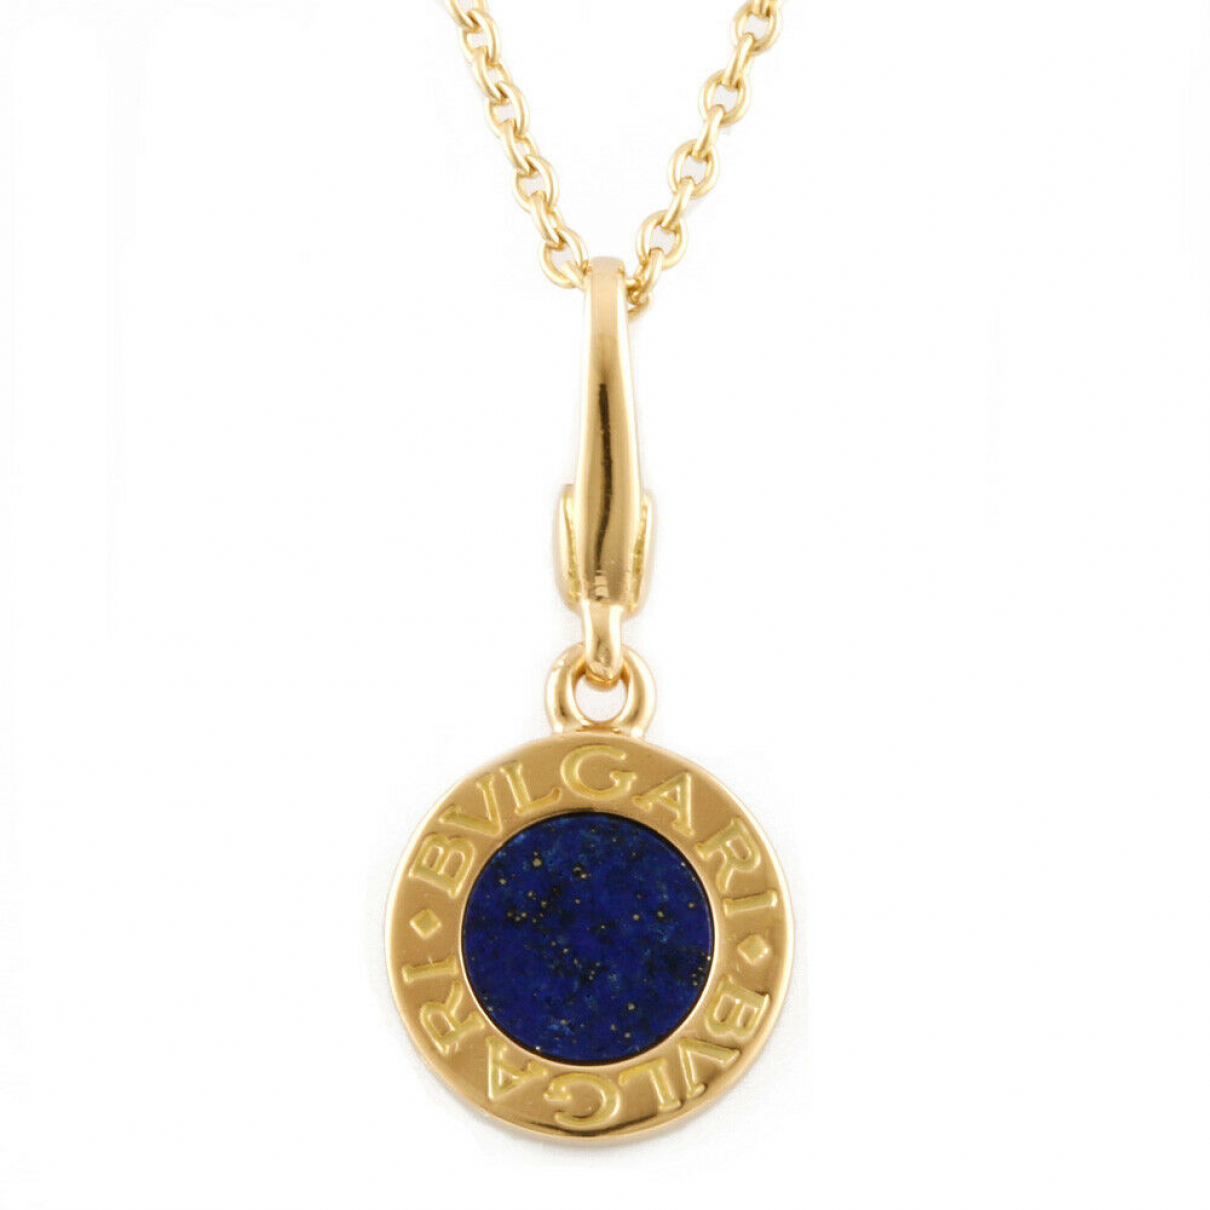 Bvlgari N necklace for Women N